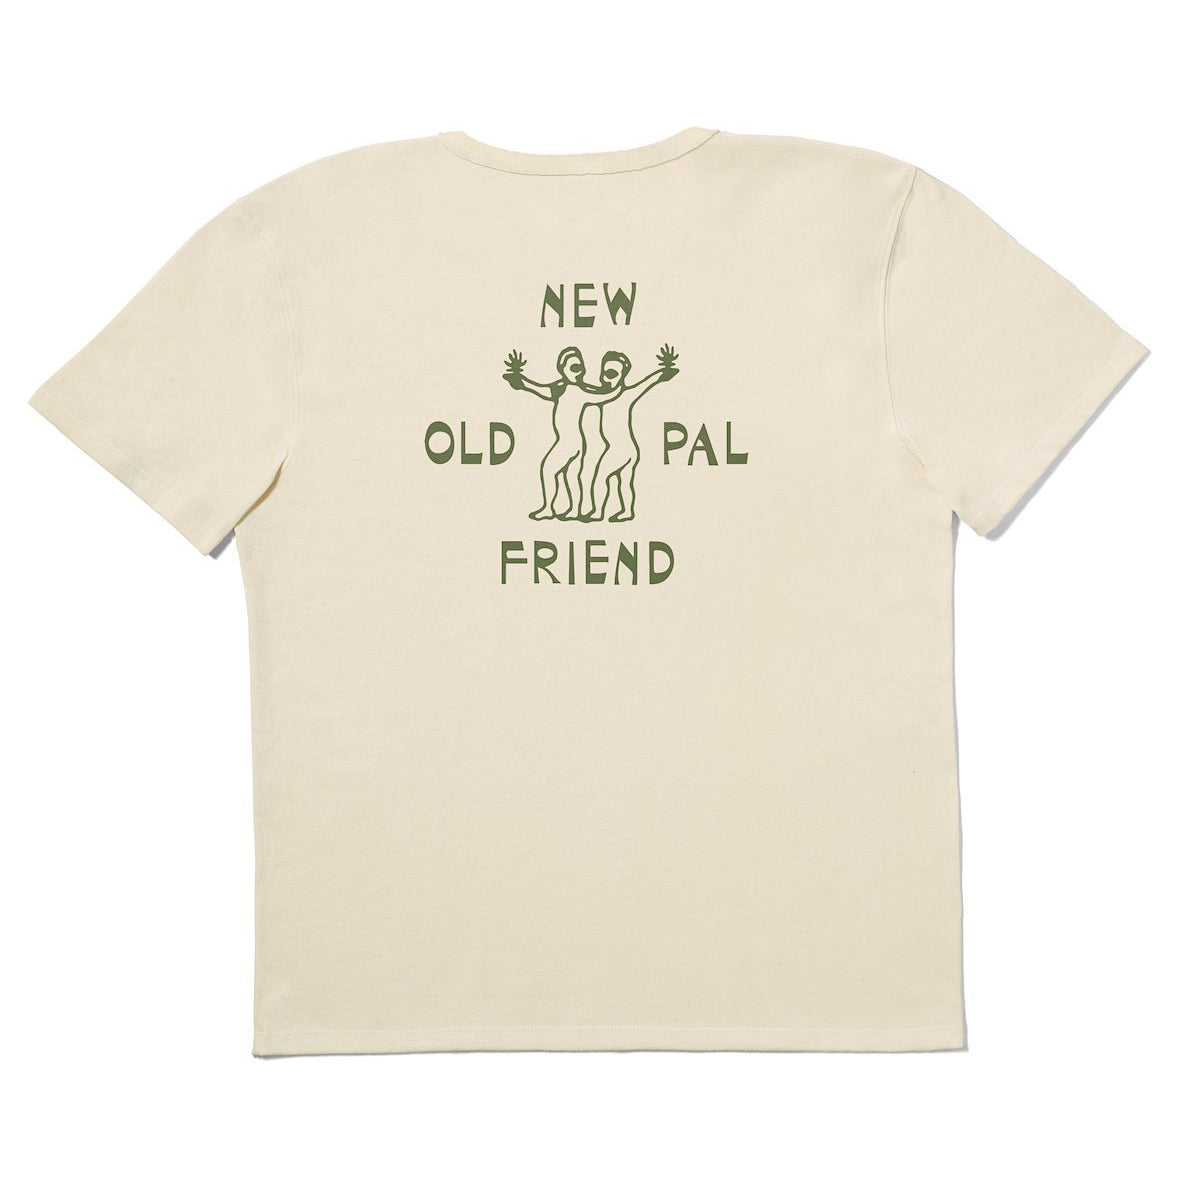 New Friend Pocket Tee